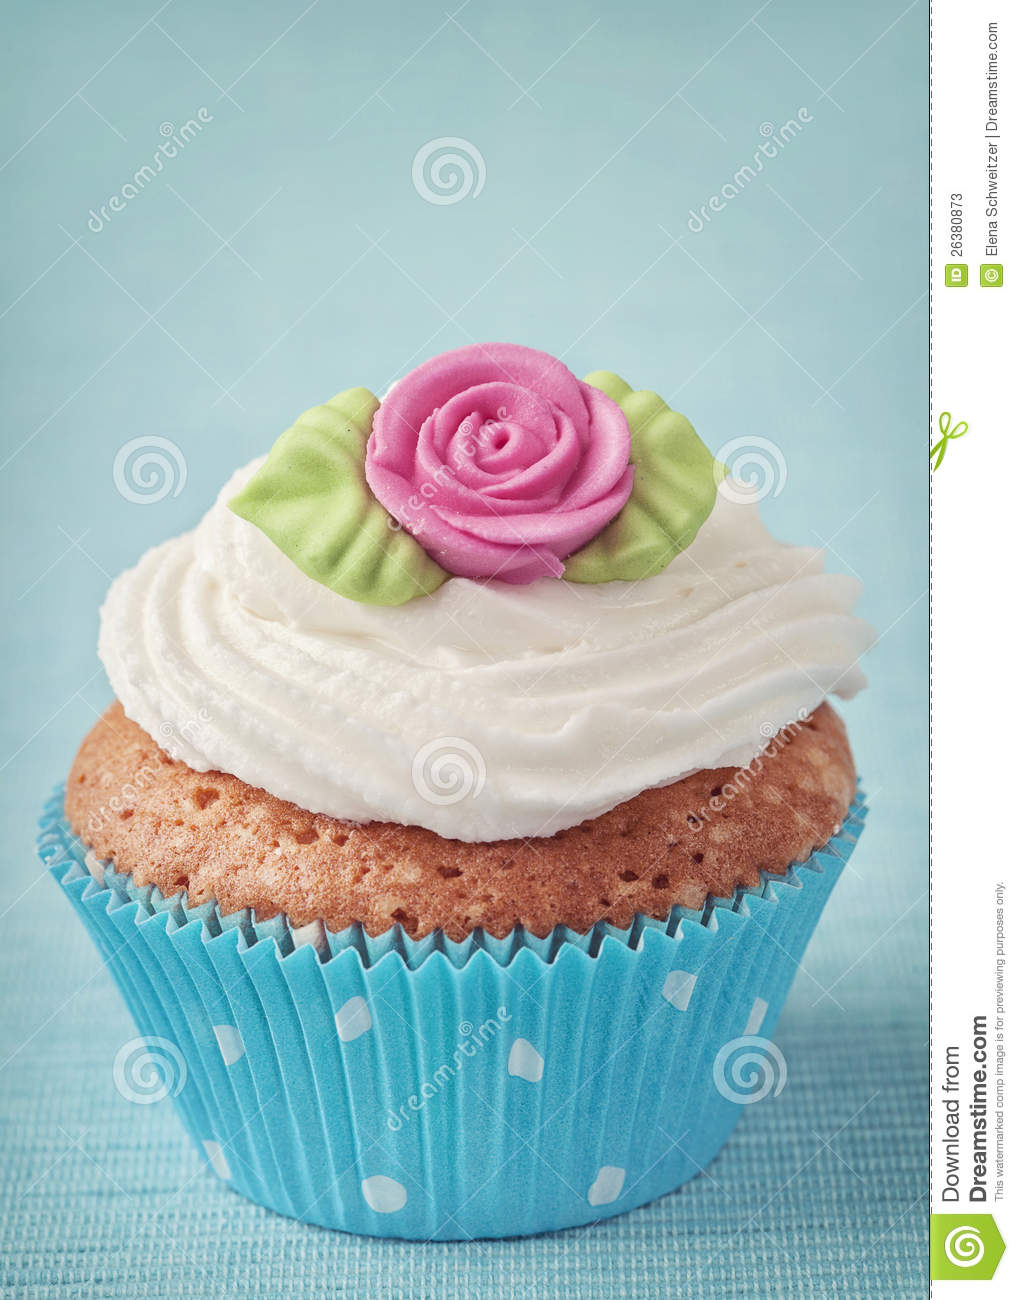 Cup Cake Stock Photos - Image: 26380873